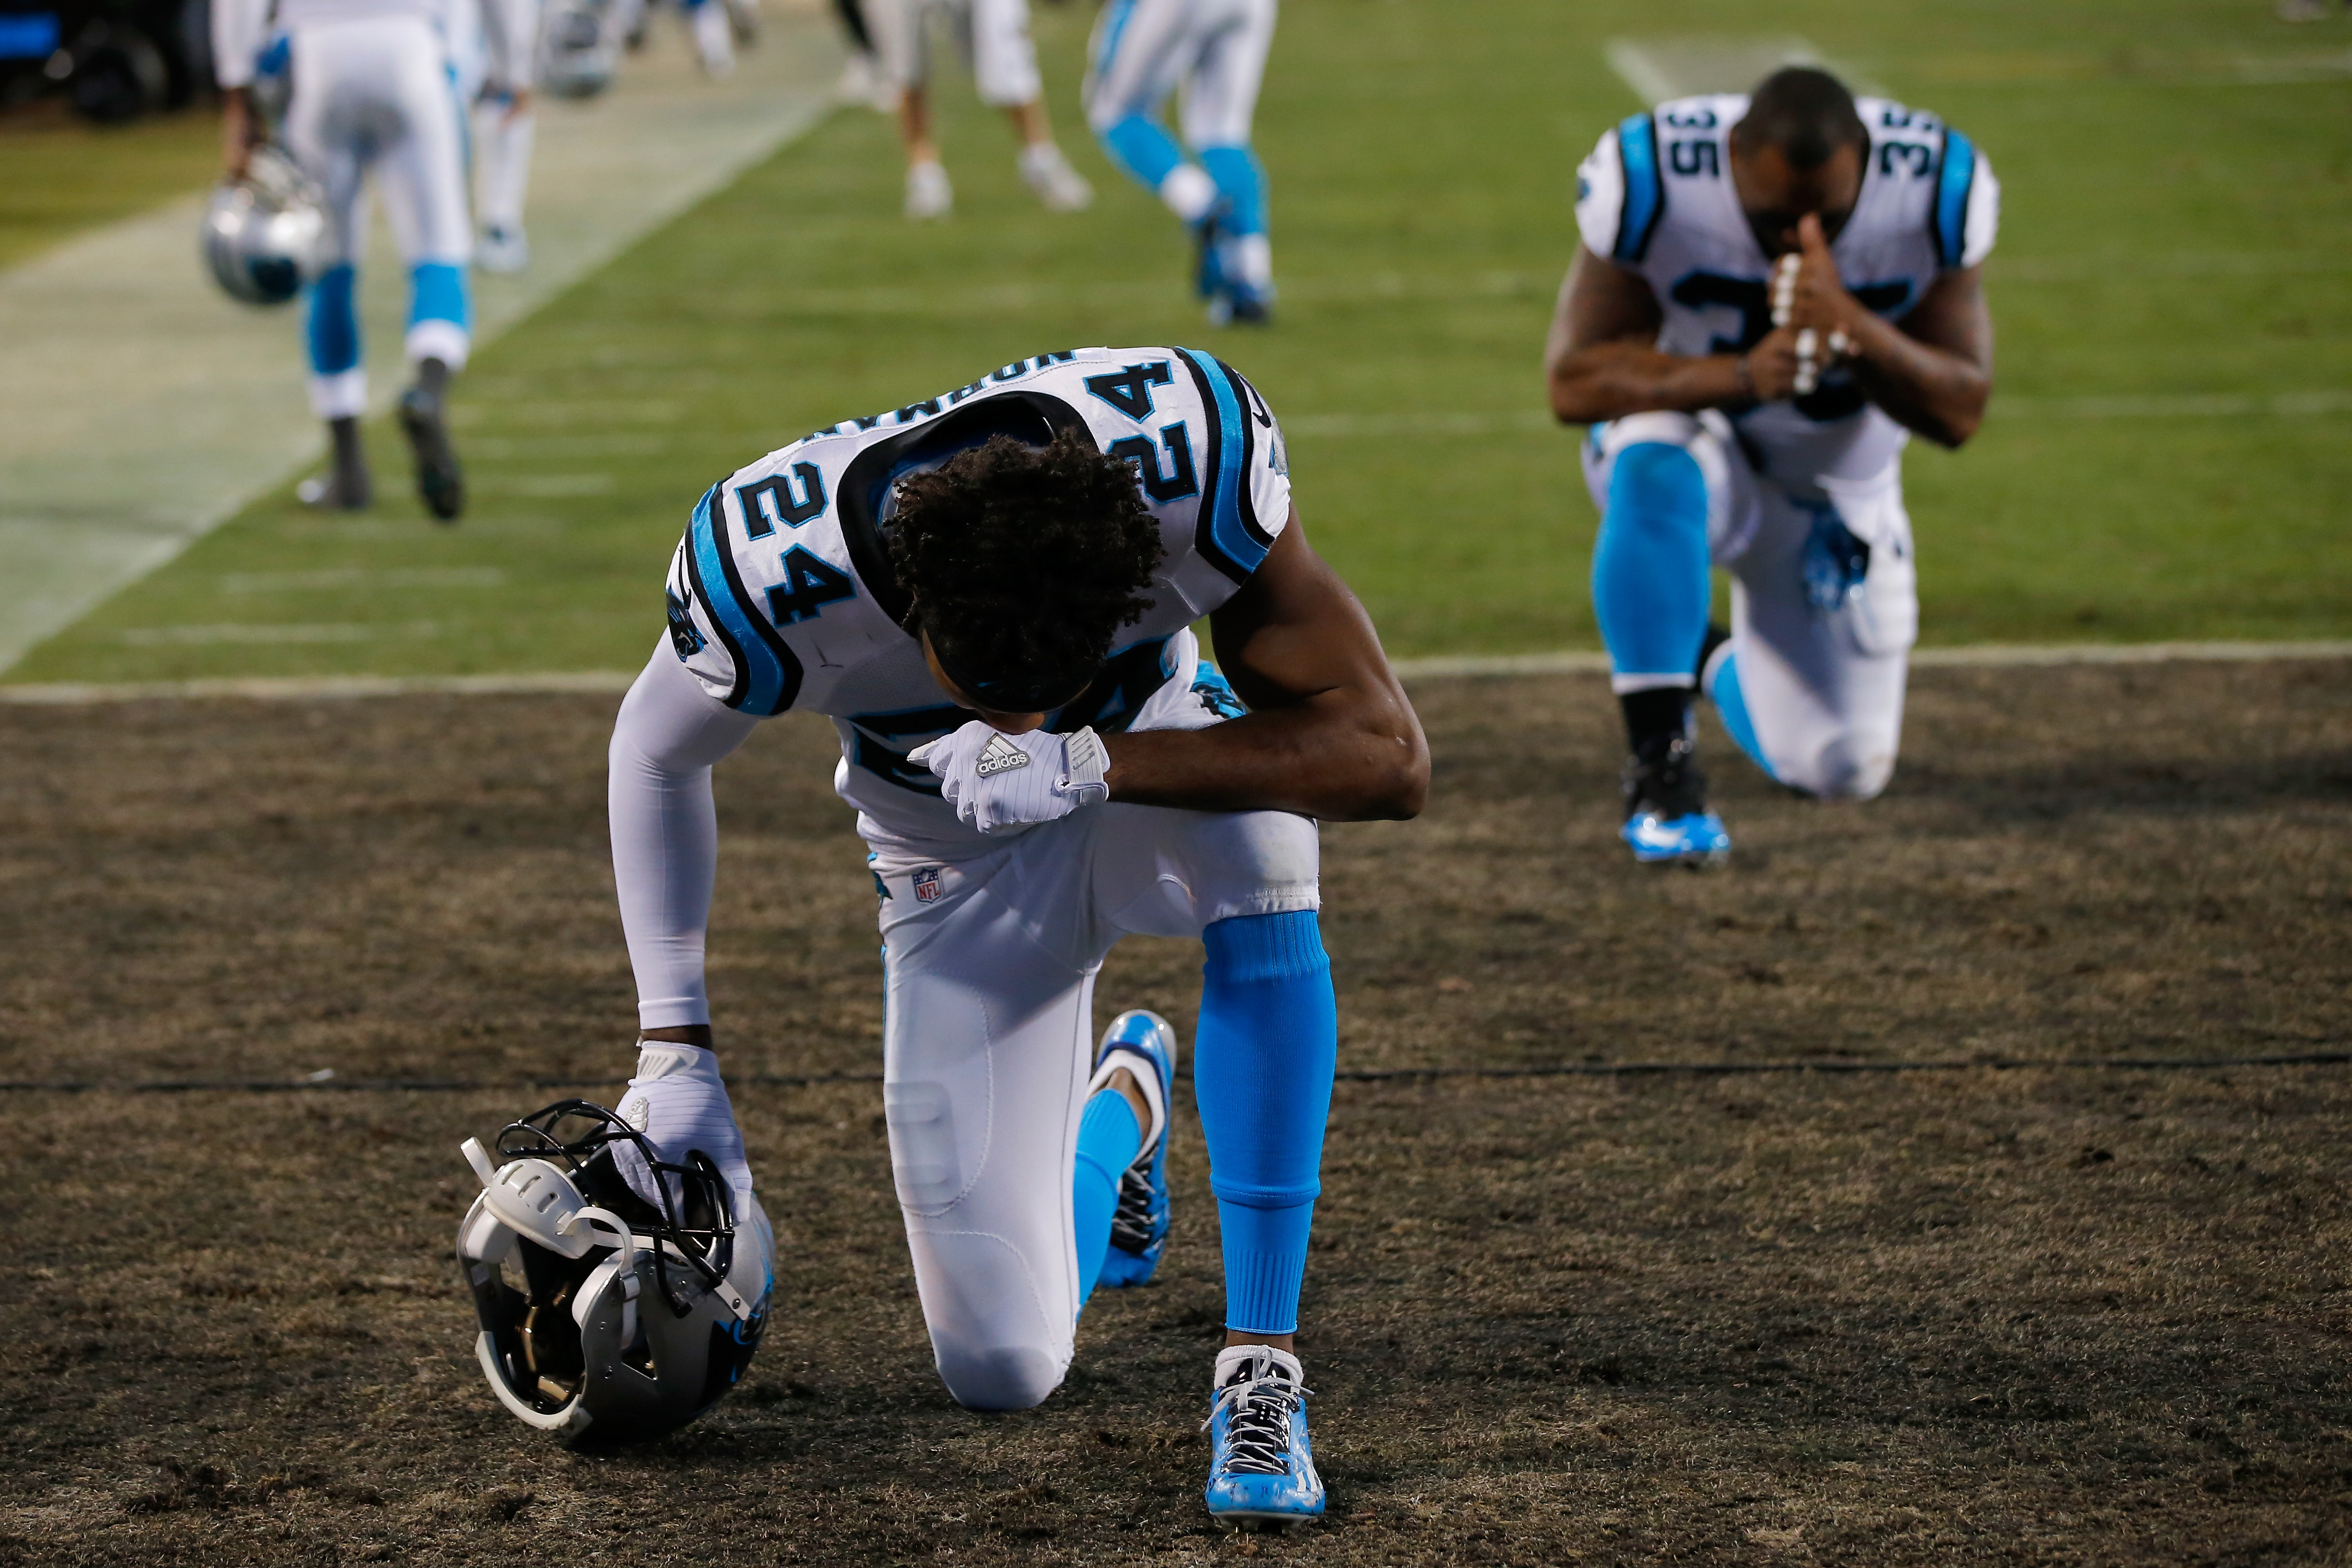 CHARLOTTE, NC - JANUARY 24: Josh Norman #24 of the Carolina Panthers and Mike Tolbert #35 kneel in the end zone prior to the NFC Championship Game against the Arizona Cardinals at Bank of America Stadium on January 24, 2016 in Charlotte, North Carolina. (Photo by Kevin C. Cox/Getty Images)